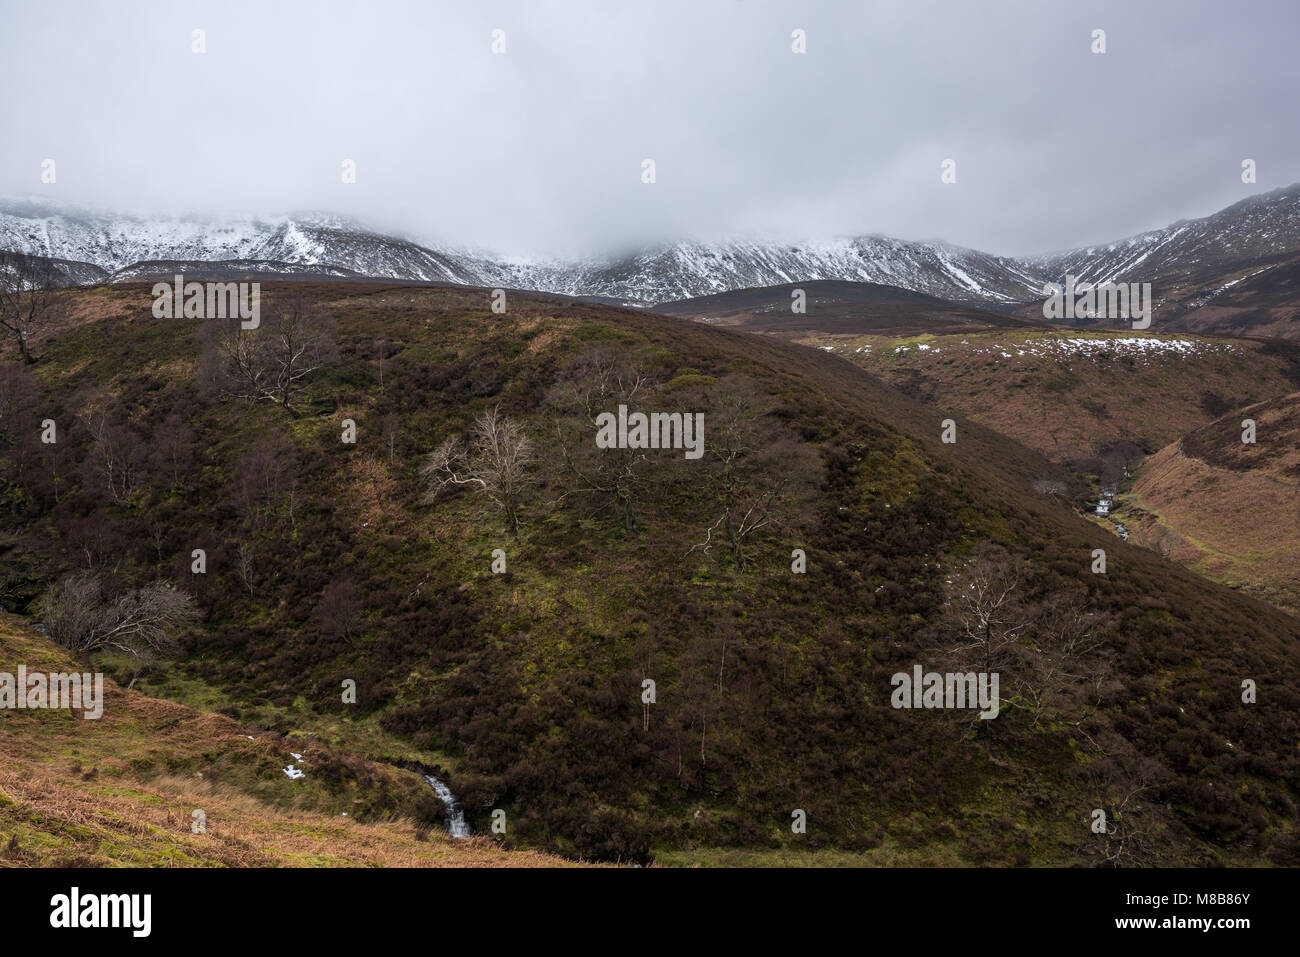 Seal Edge and Fairbrook Naze, Kinder Scout, Peak District - Stock Image